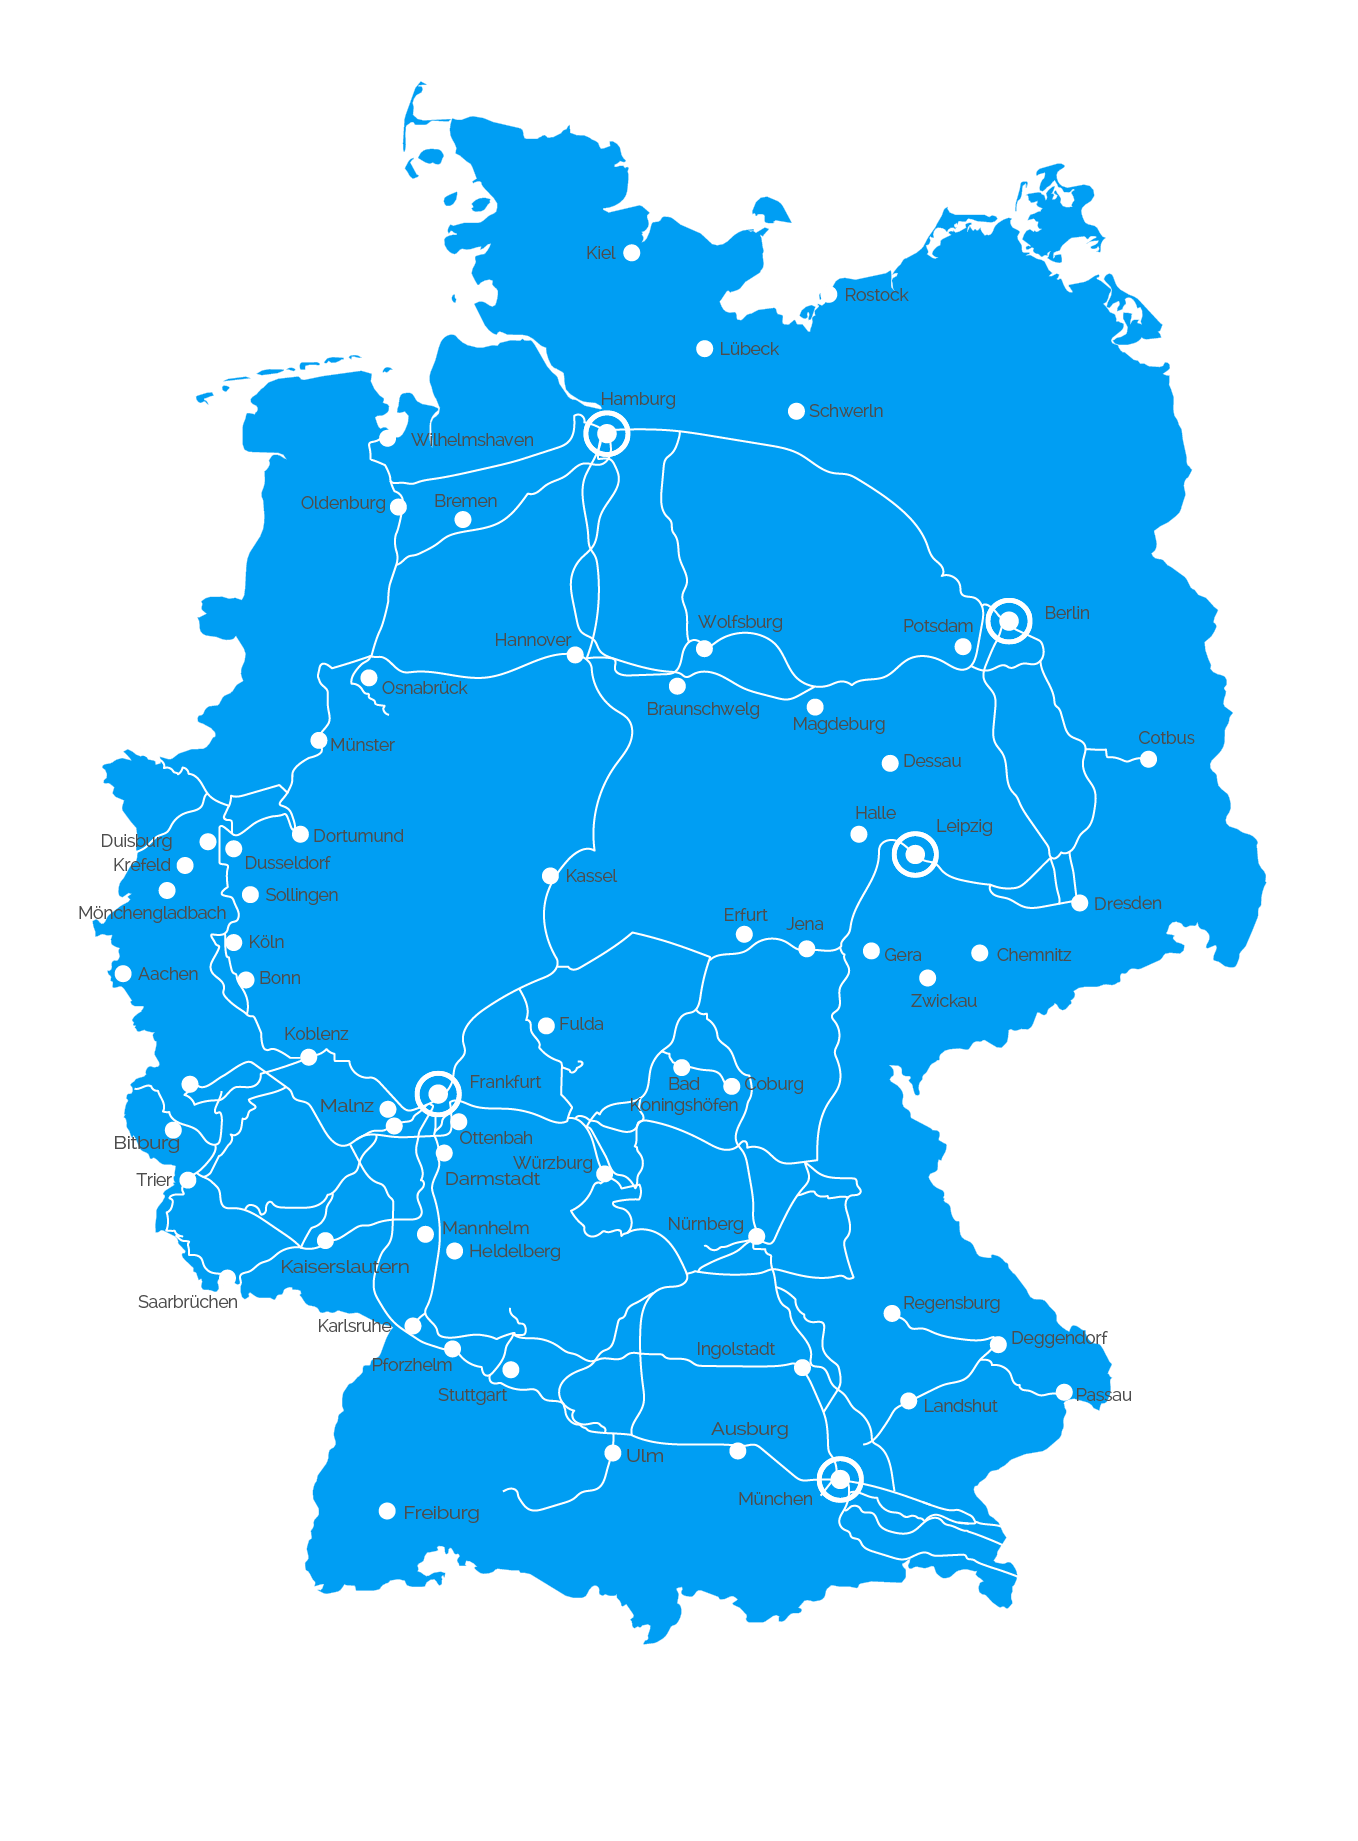 Relined Network Germany